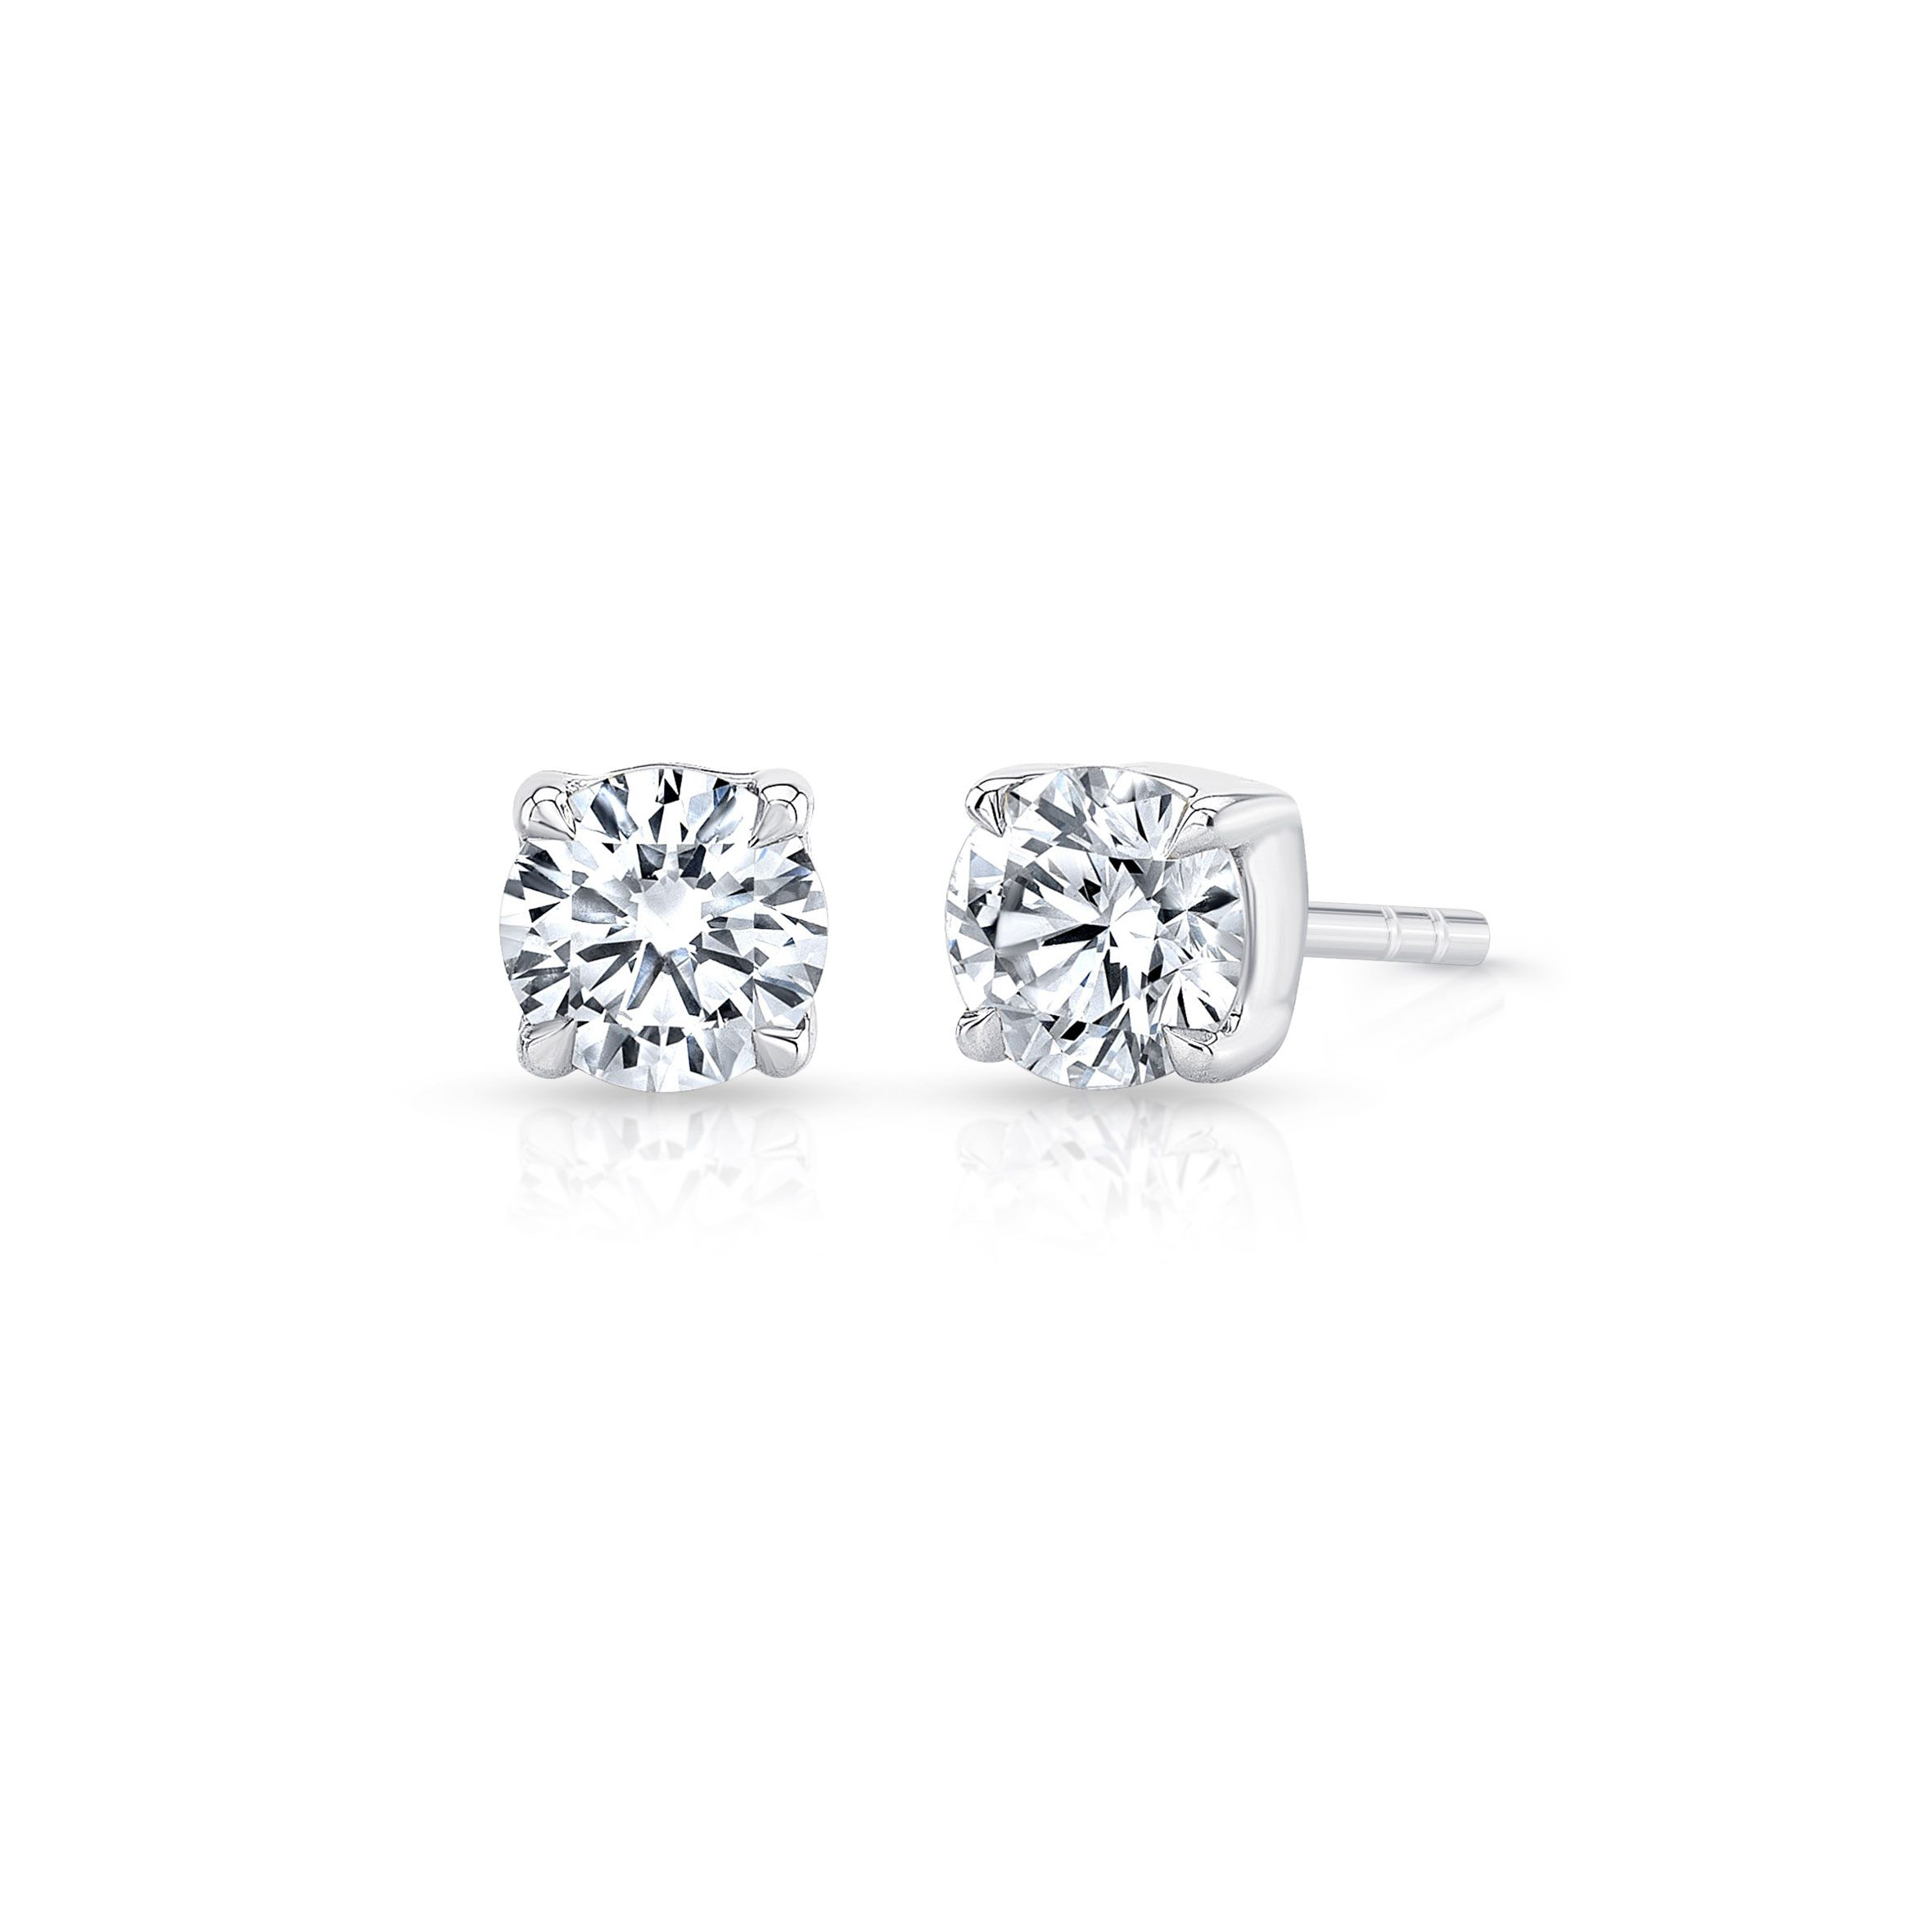 Carlie Round Brilliant Lab Grown Diamond Studs in White Gold Product Shot from Oui by Jean Dousset